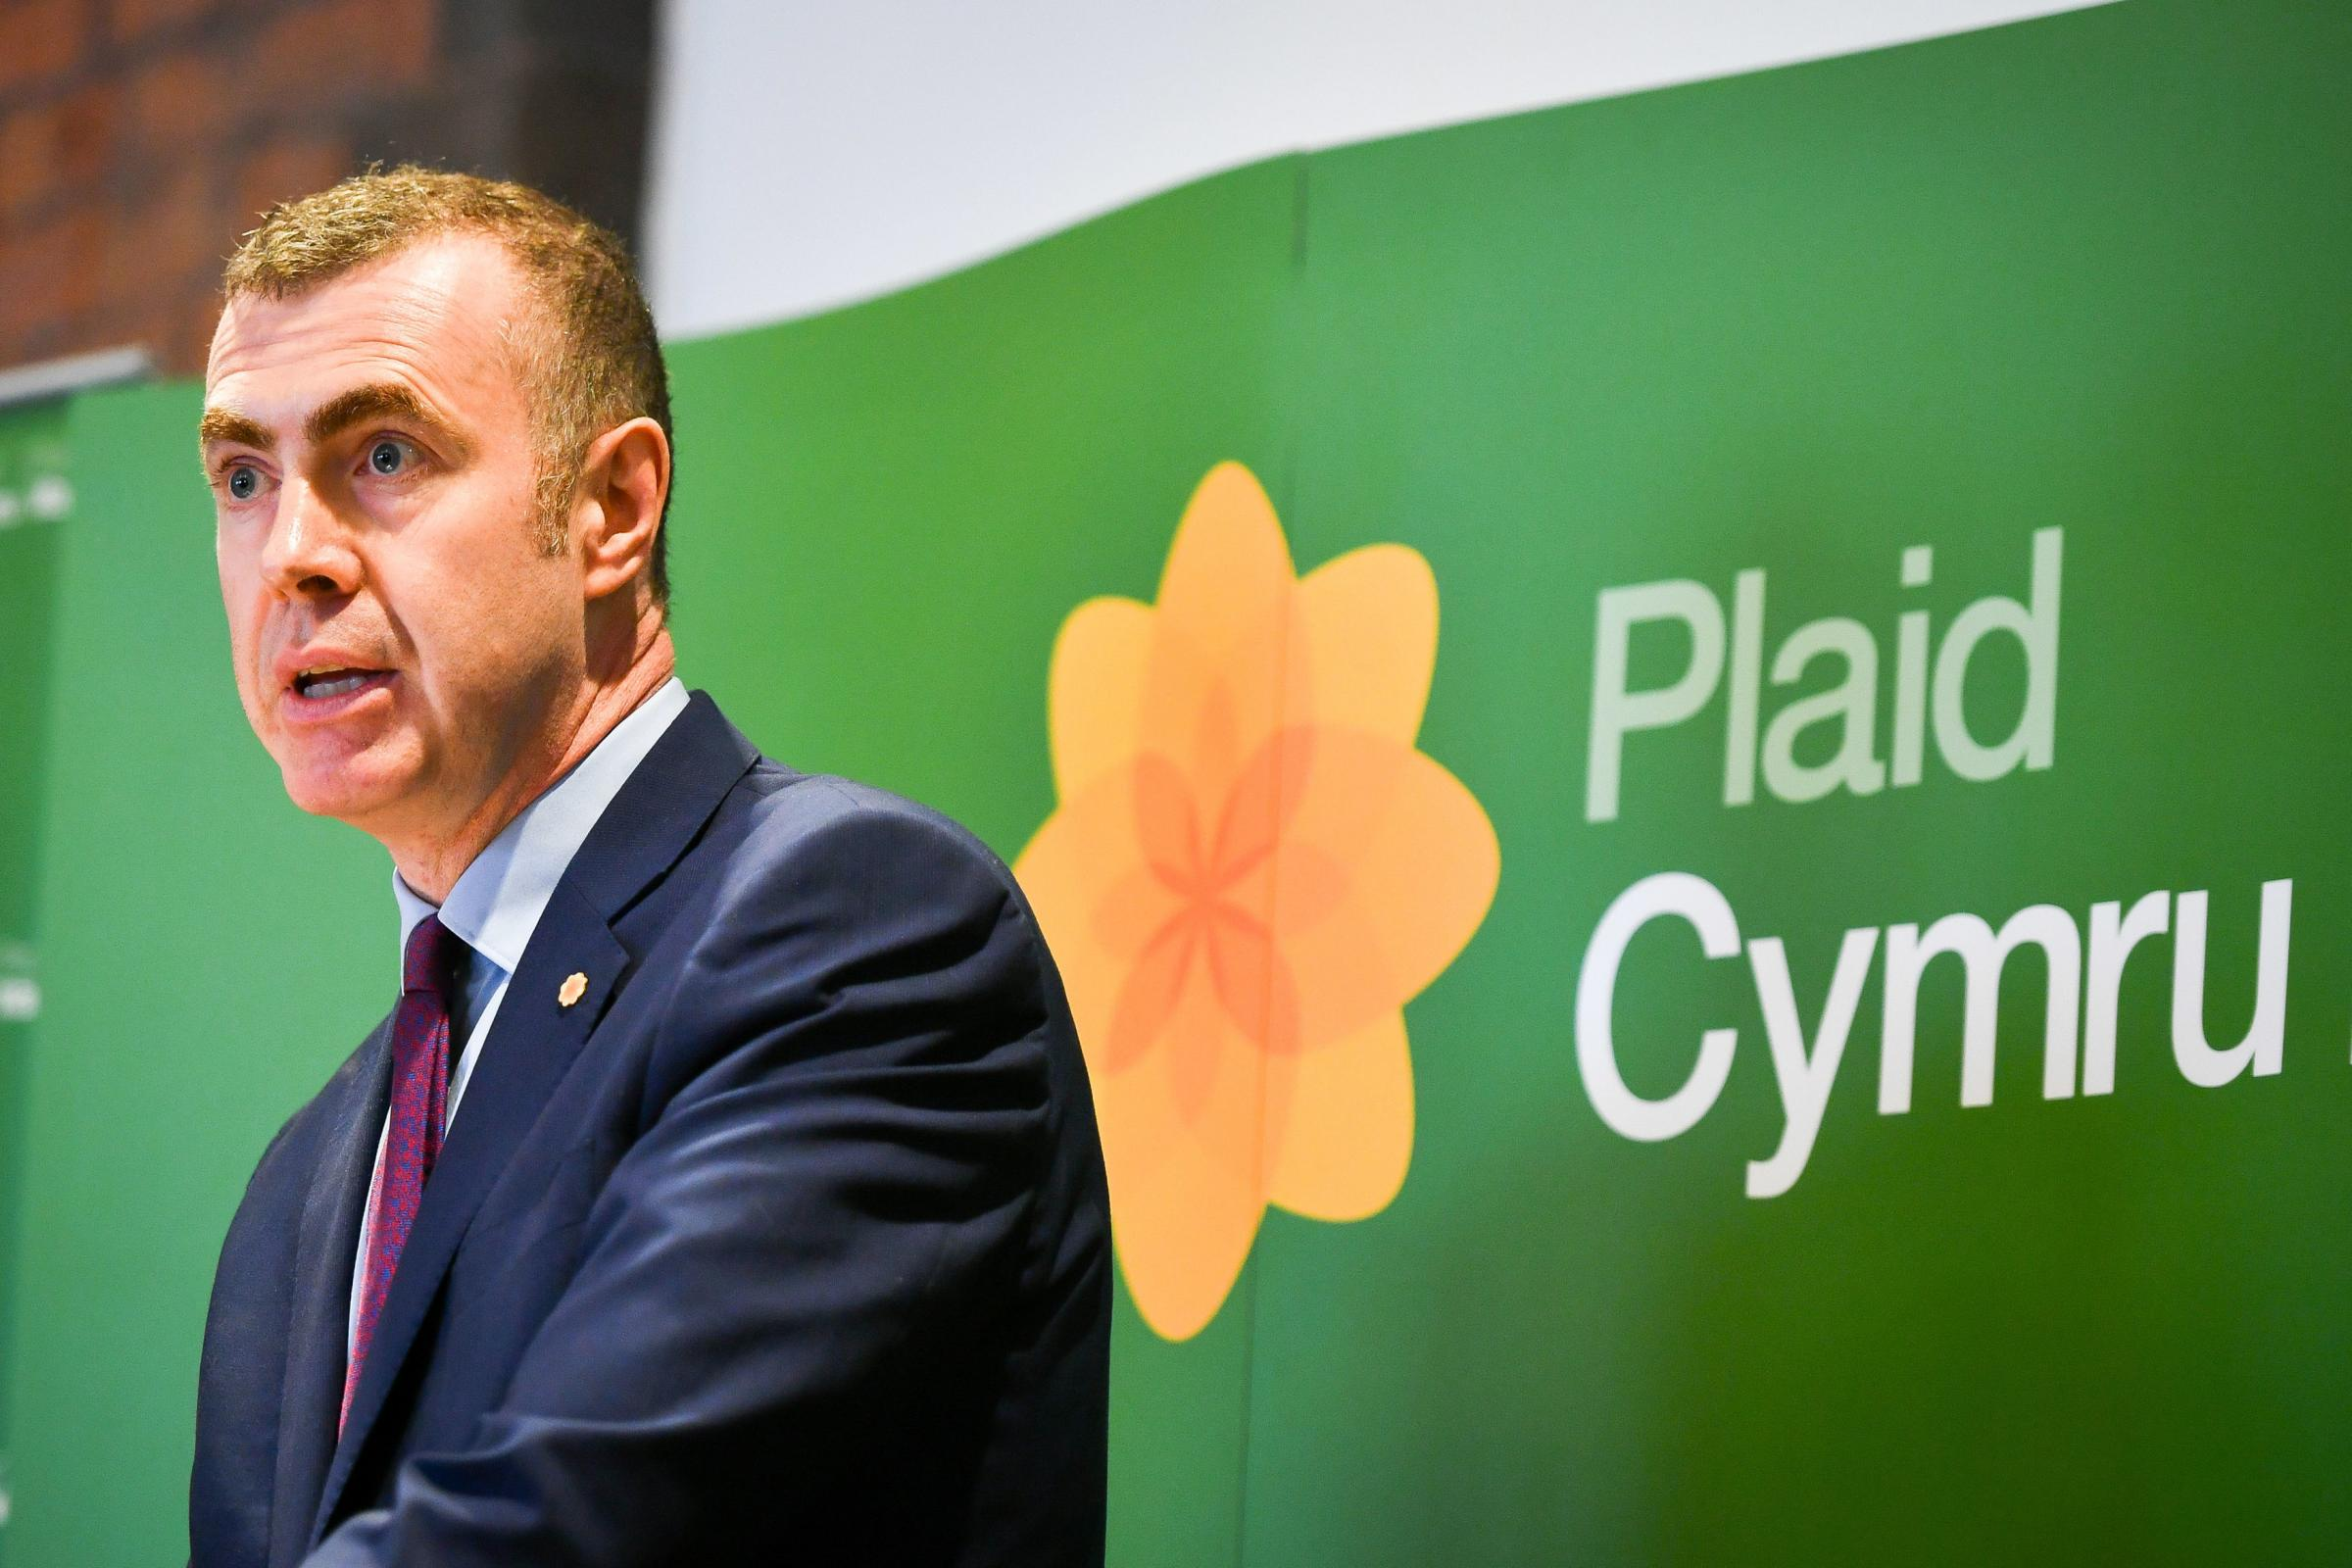 Adam Price, who recently became leader of Plaid Cymru